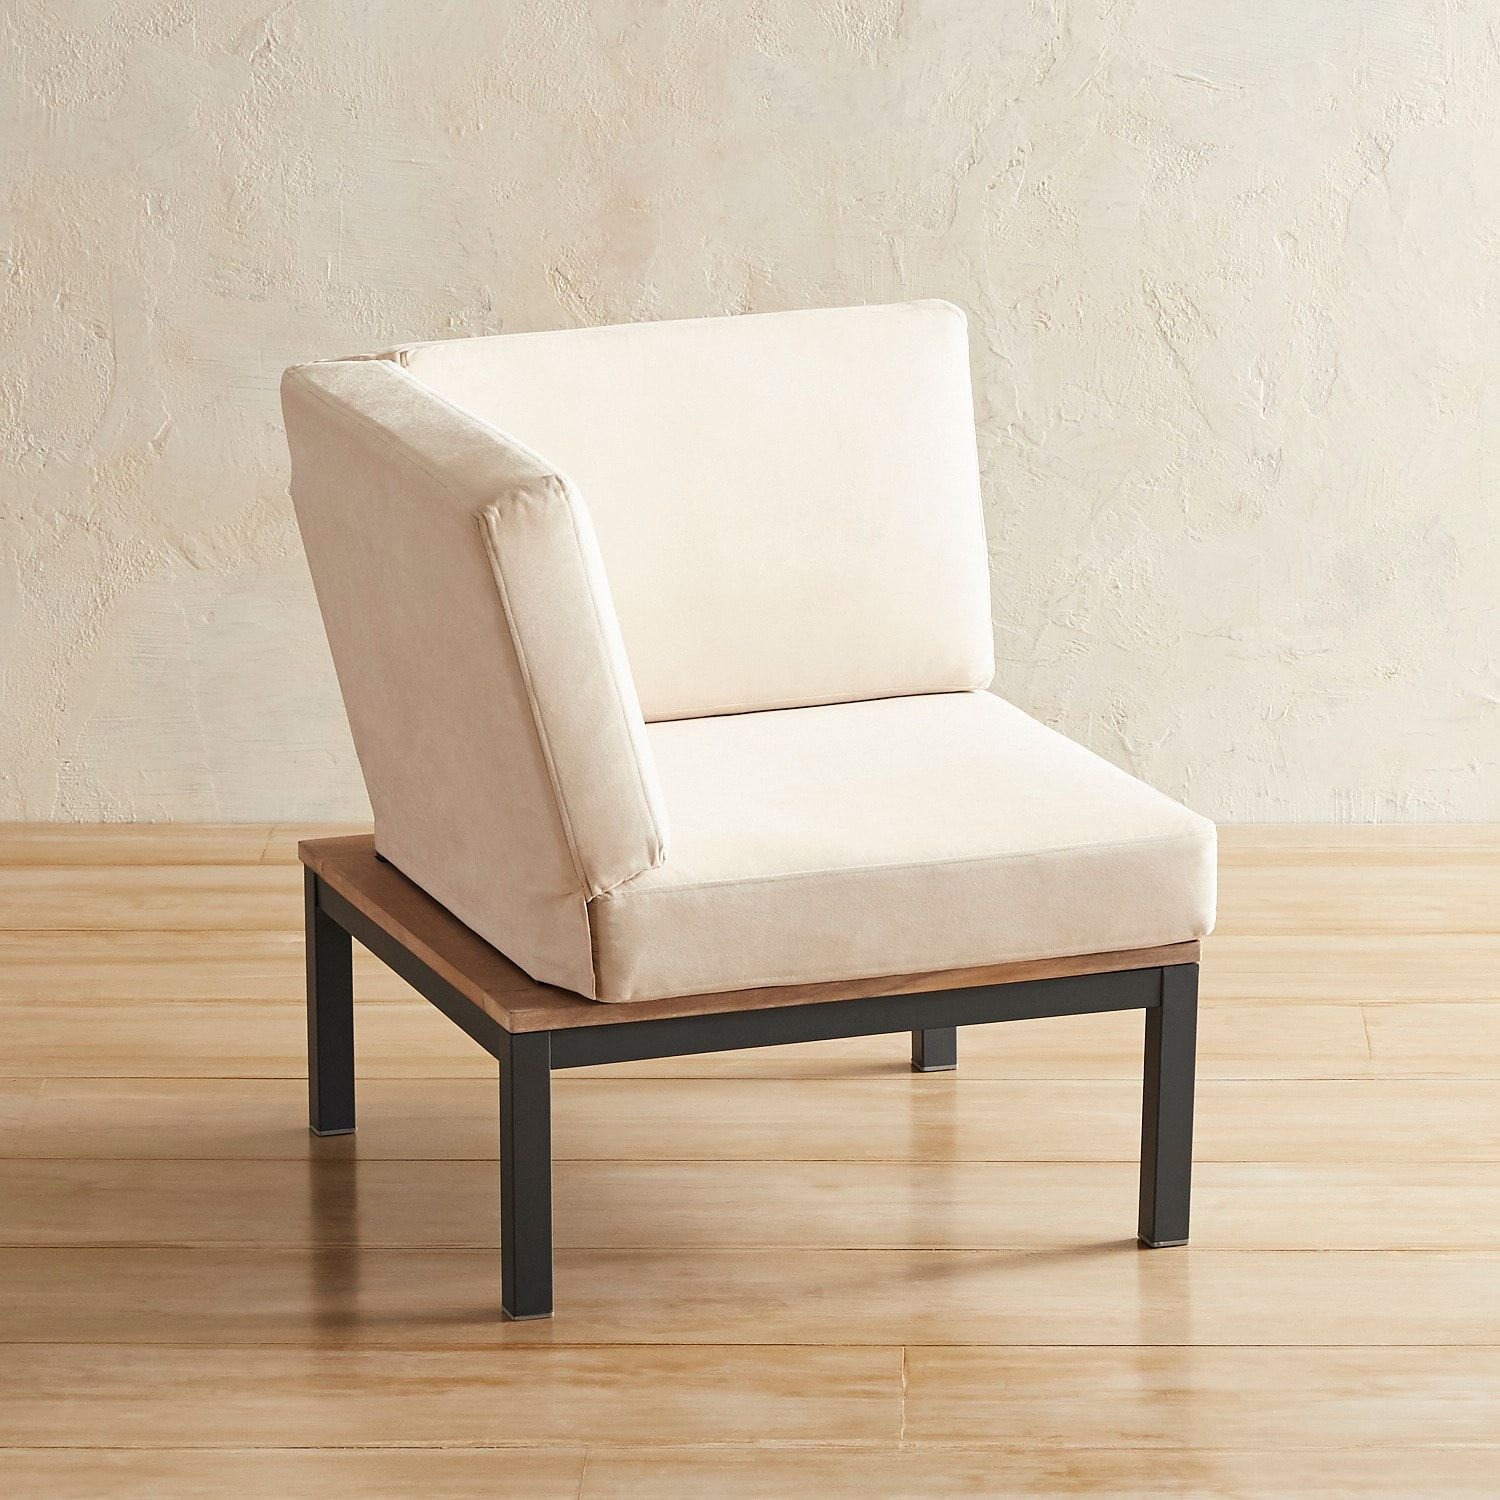 Dolton lounge corner chair with cushions with images